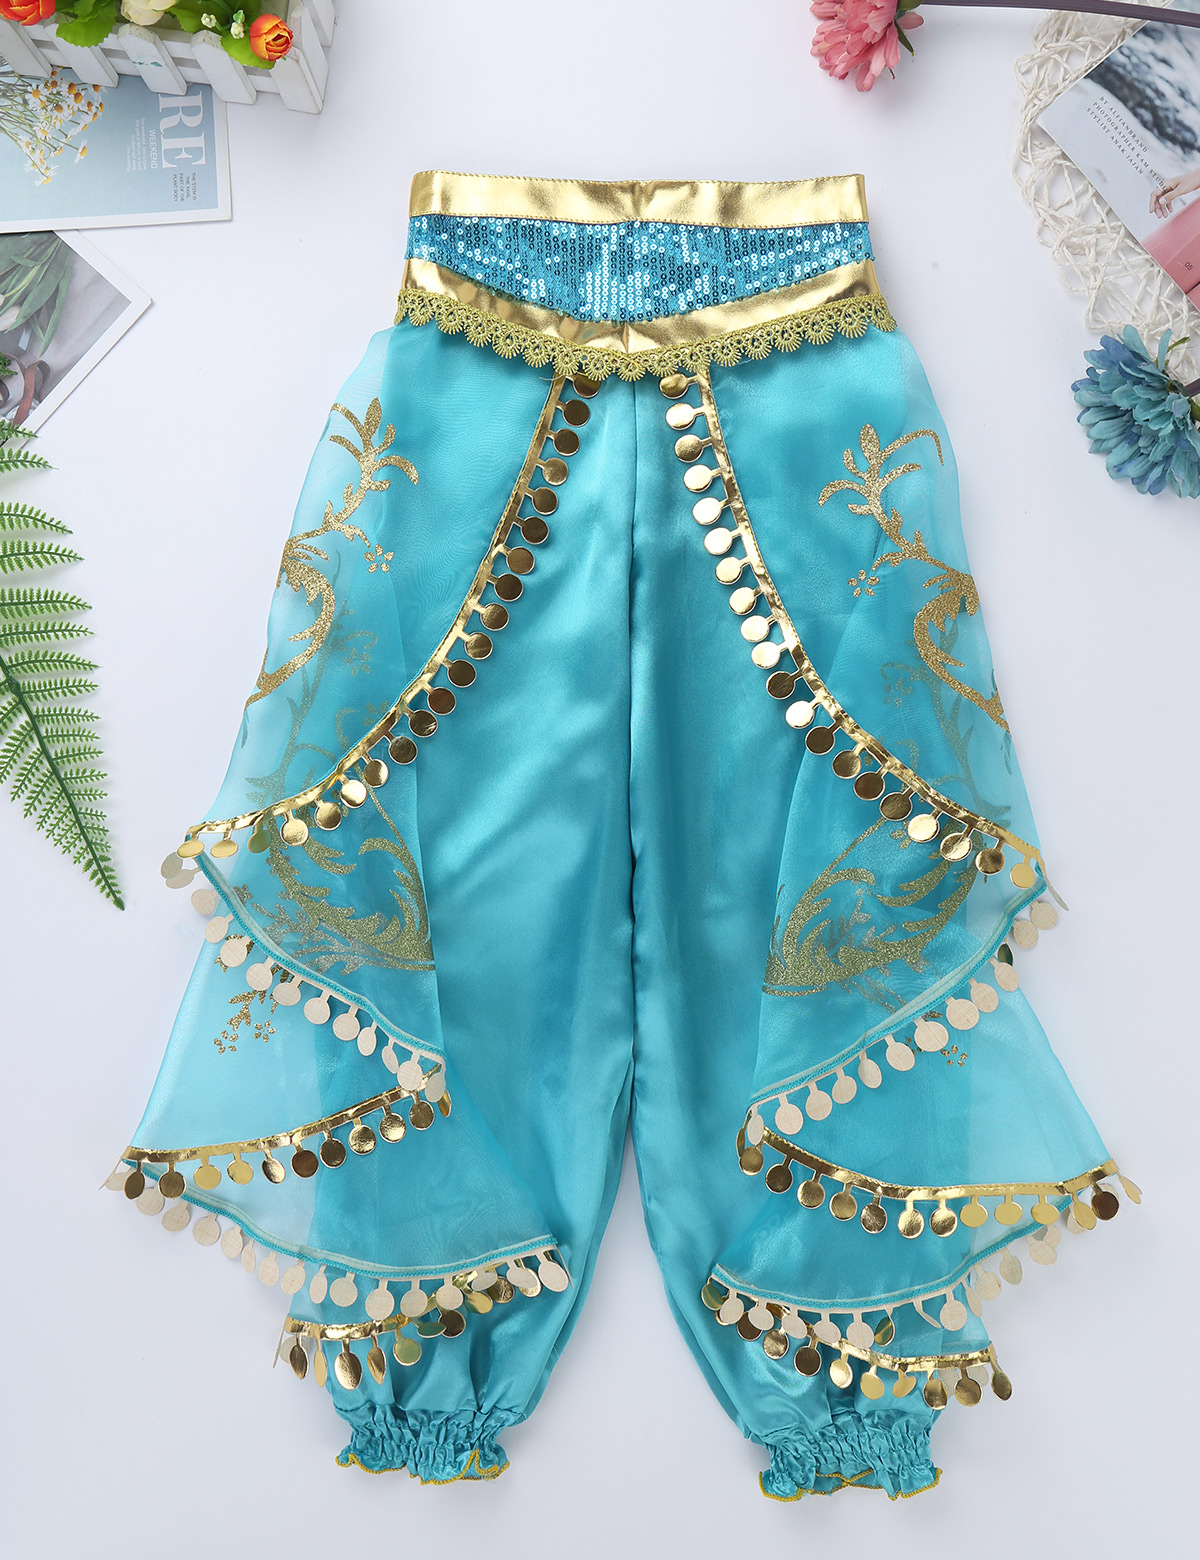 Image 5 - Kids Girls Princess Glittery Sequins Rhinestone Costume Outfit Off Shoulder Crop Top with Pants Halloween Cosplay Party Dress Up-in Girls Costumes from Novelty & Special Use